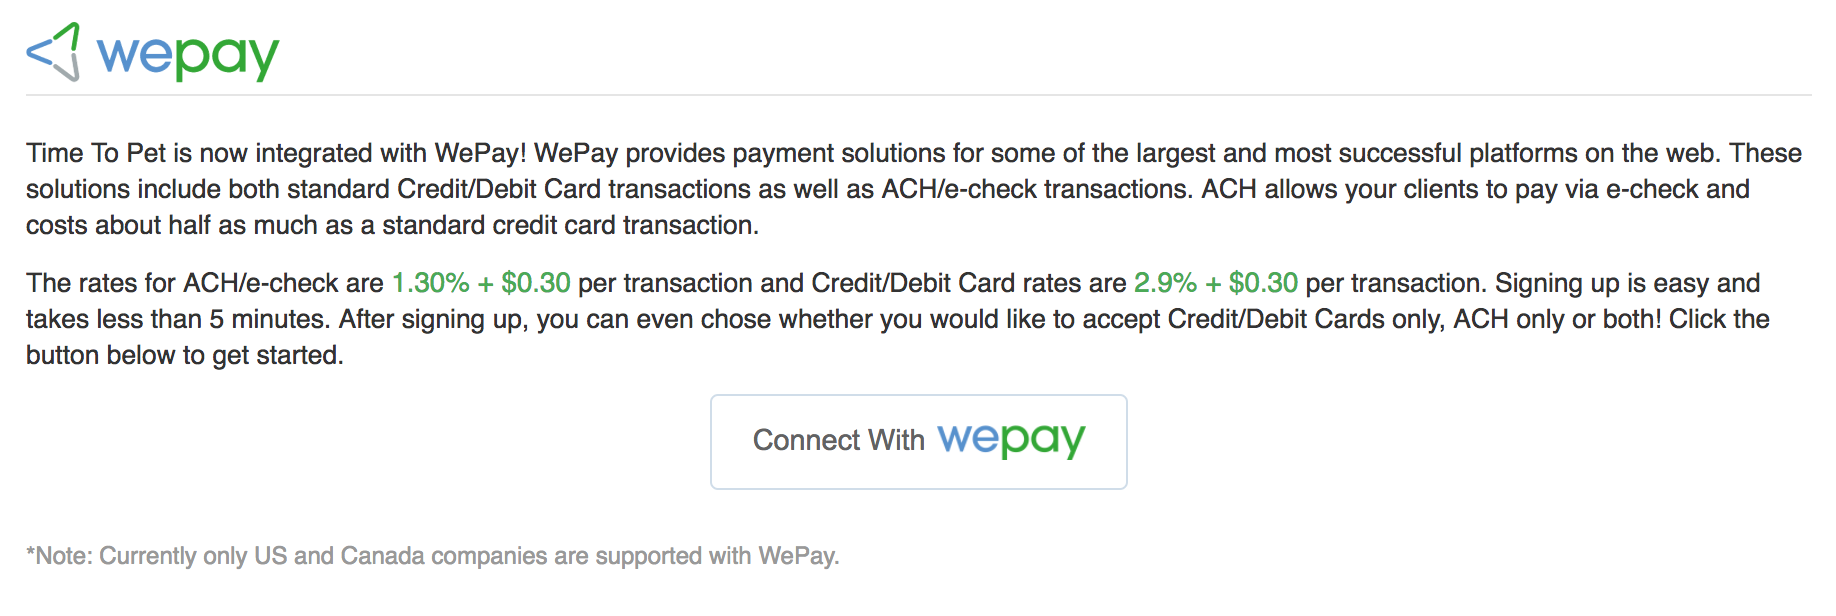 WePay - Connect with wepay